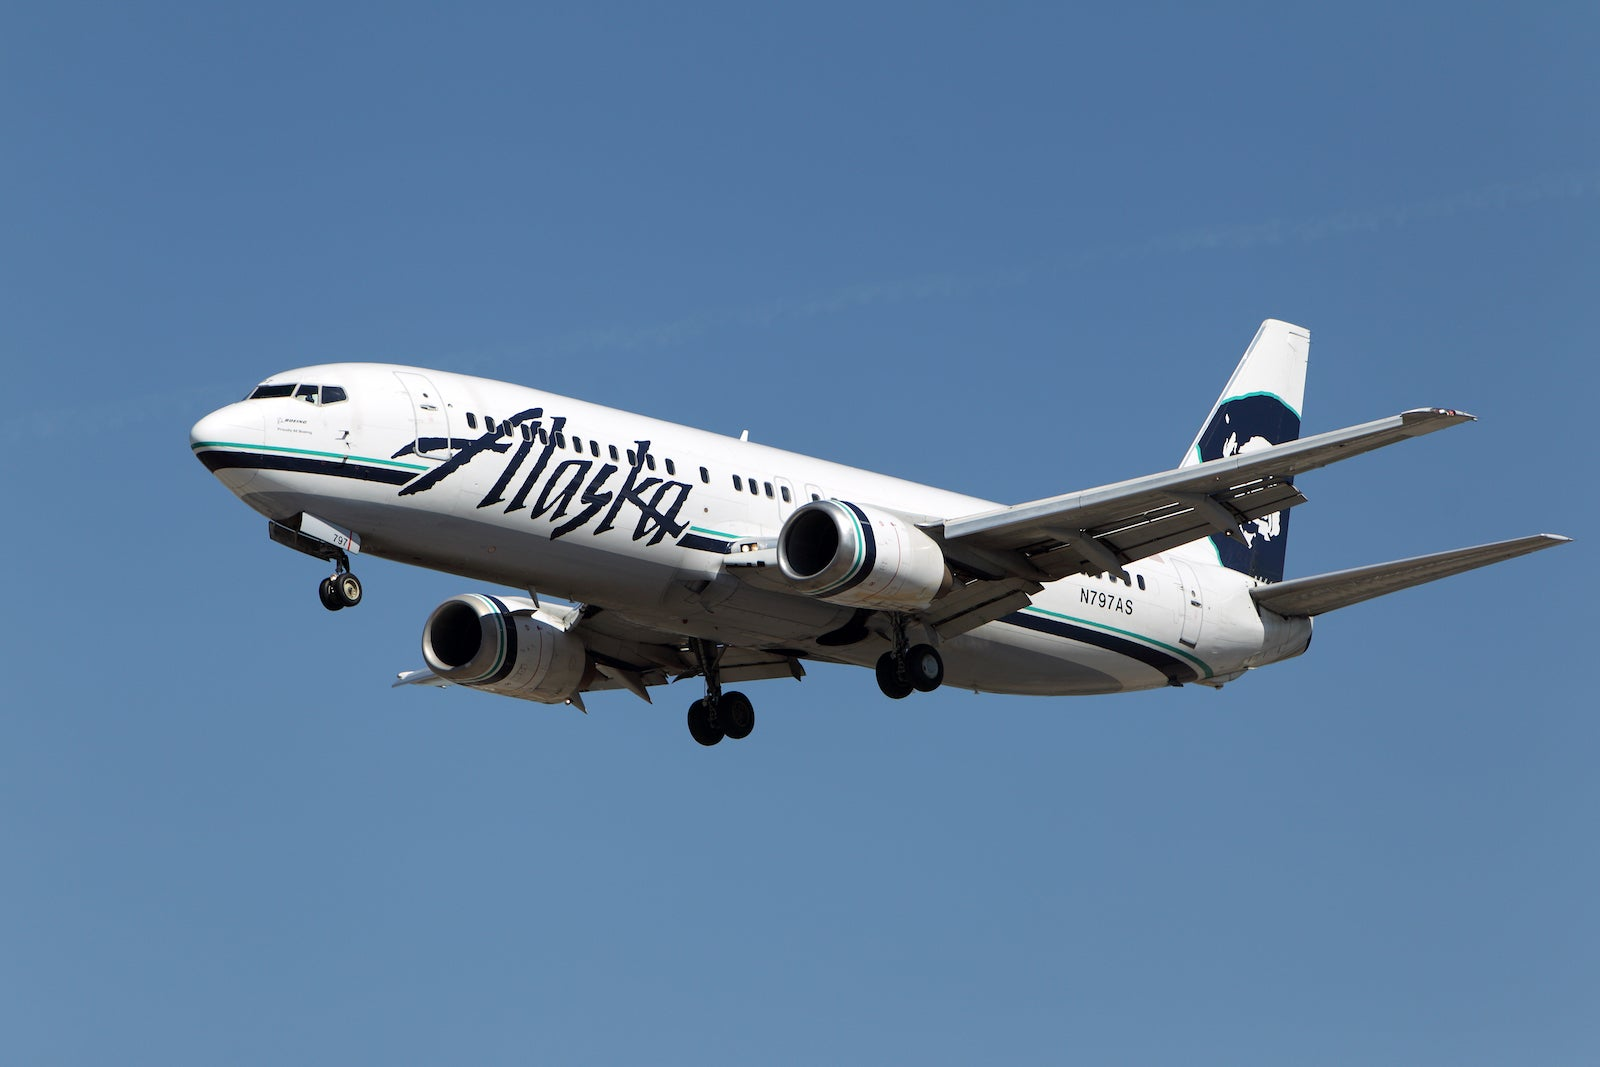 Save on Alaska Airlines, hotel stays, and fancy rental cars with the latest Amex Offers